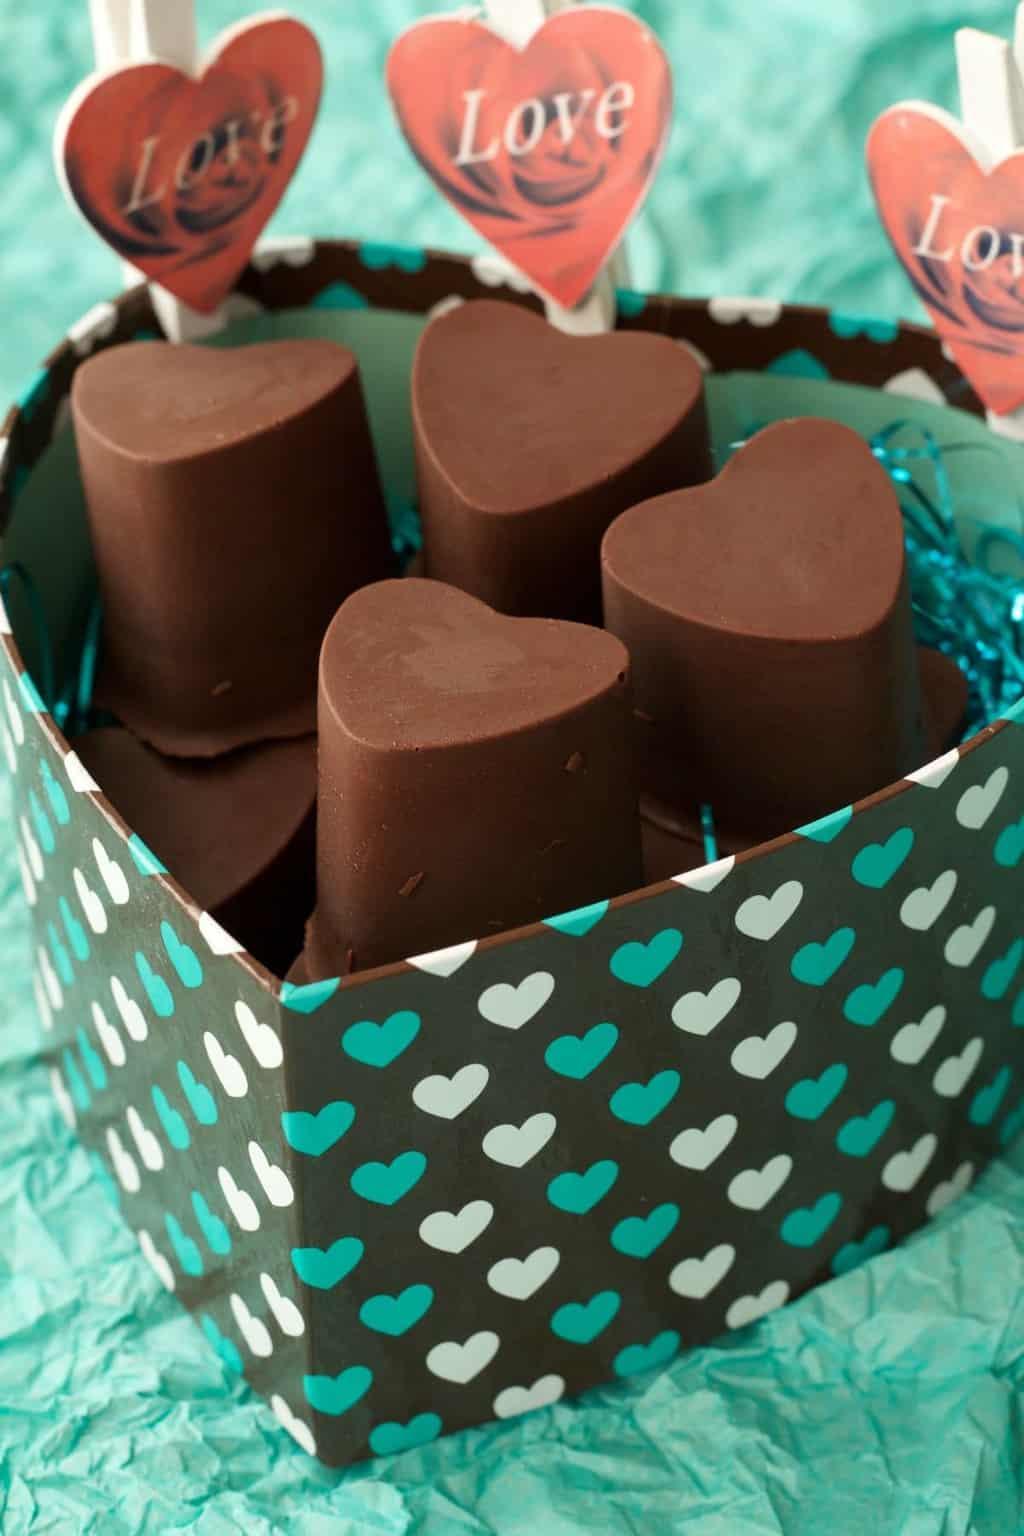 Heart-shaped vegan chocolate caramels in a heart shaped box.